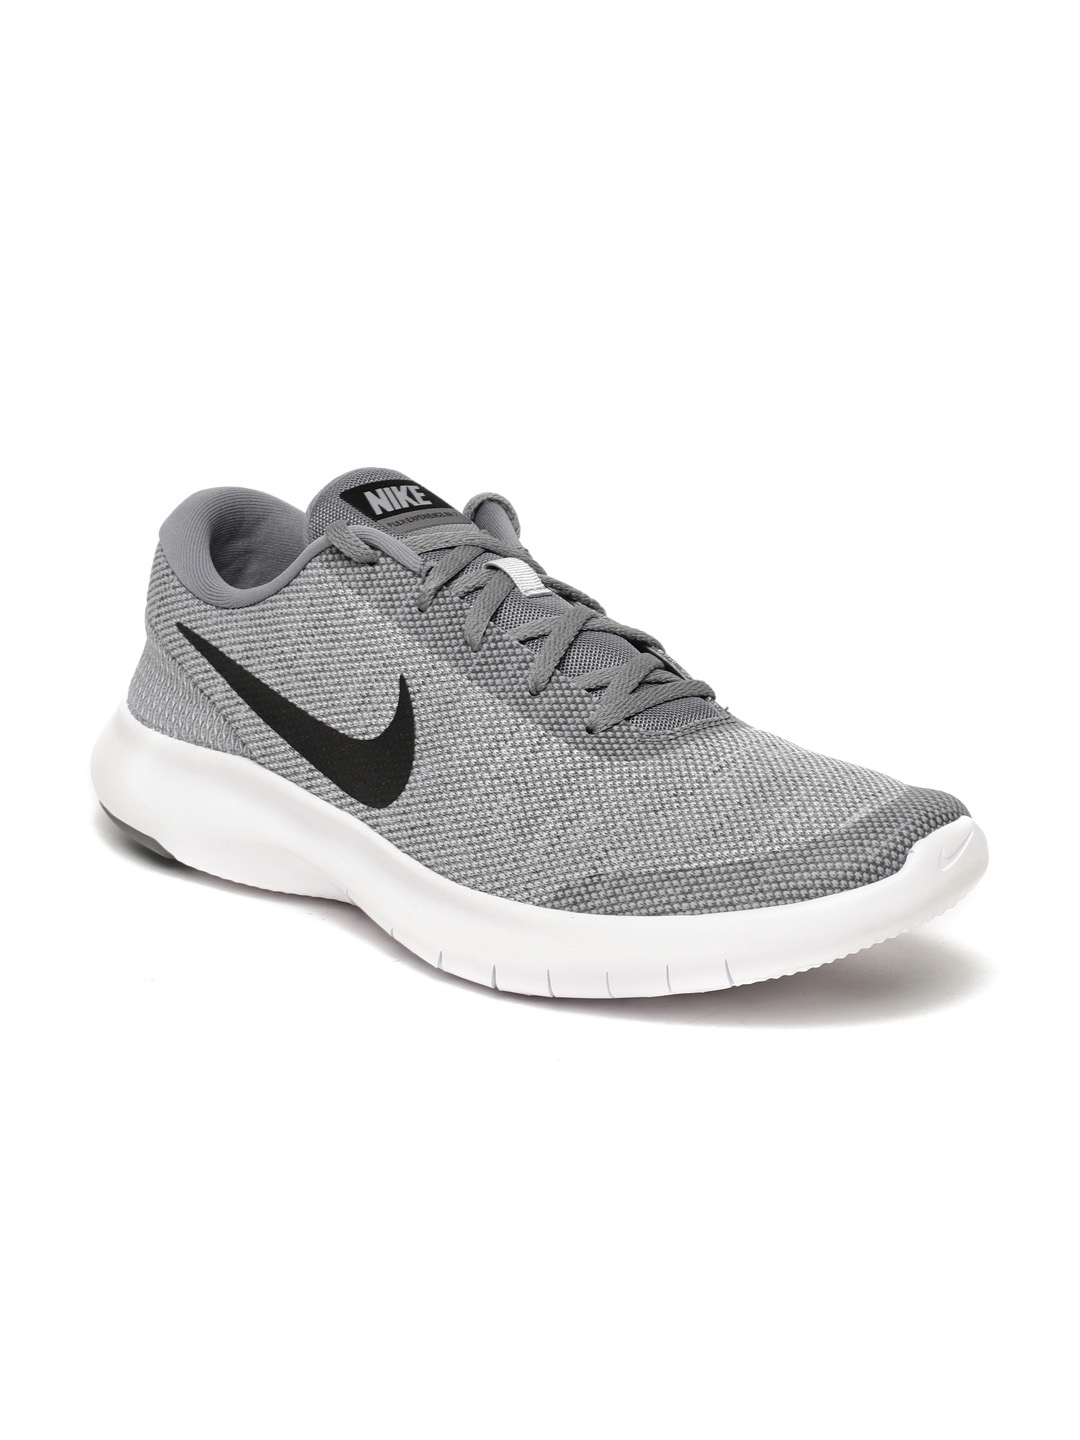 49fa265335b1 Buy Nike Men Grey Flex Experience RN 7 Running Shoes - Sports Shoes ...